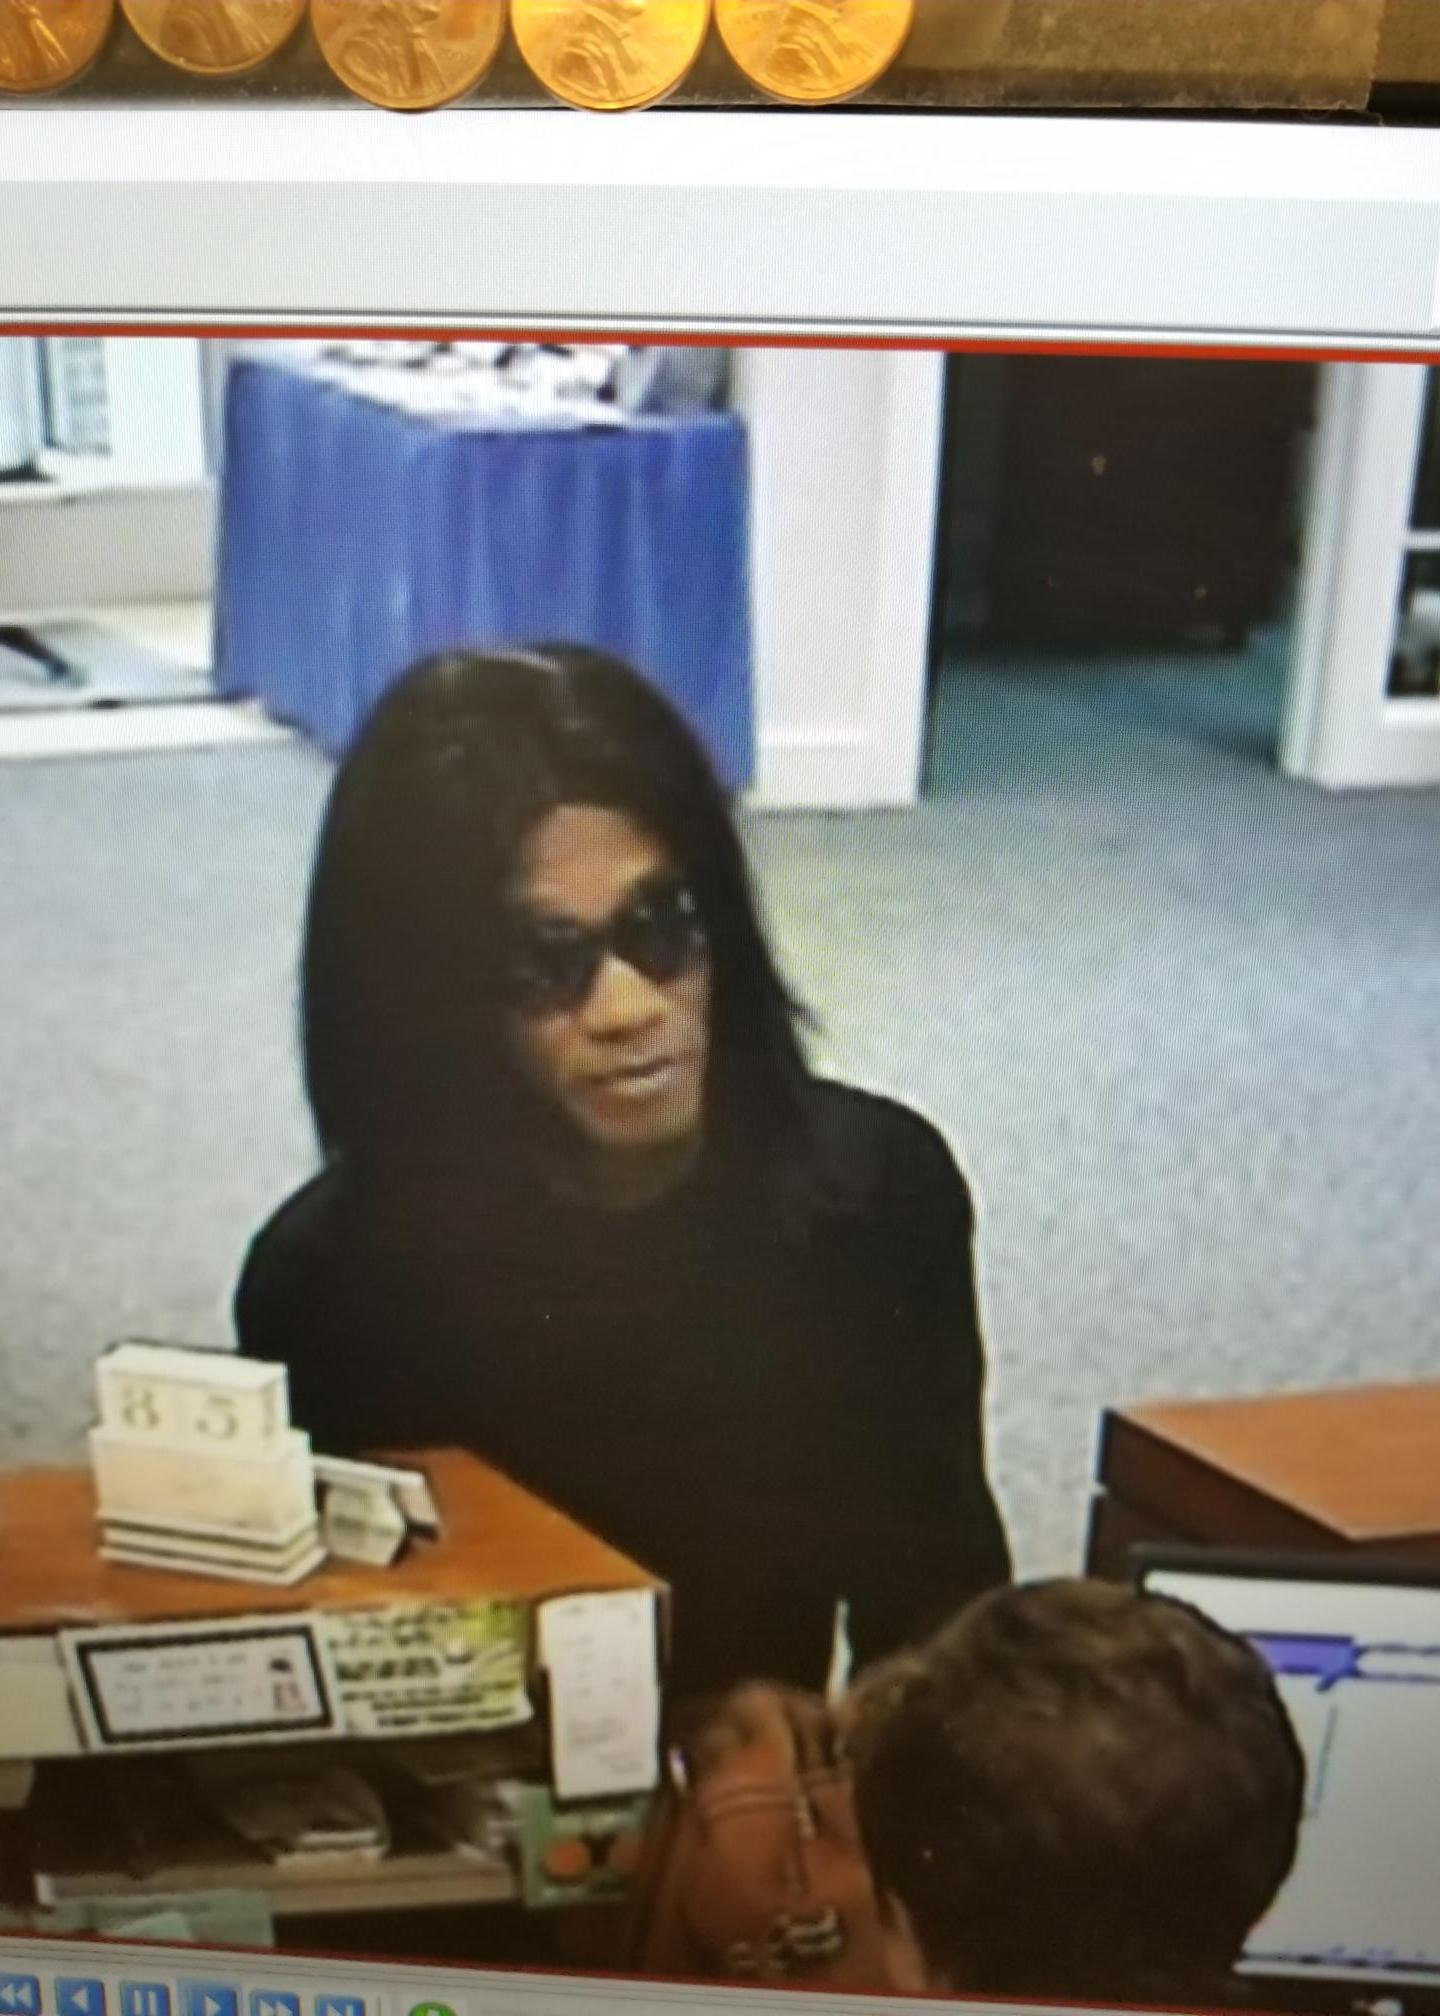 Old Point National Bank bank robbery suspect